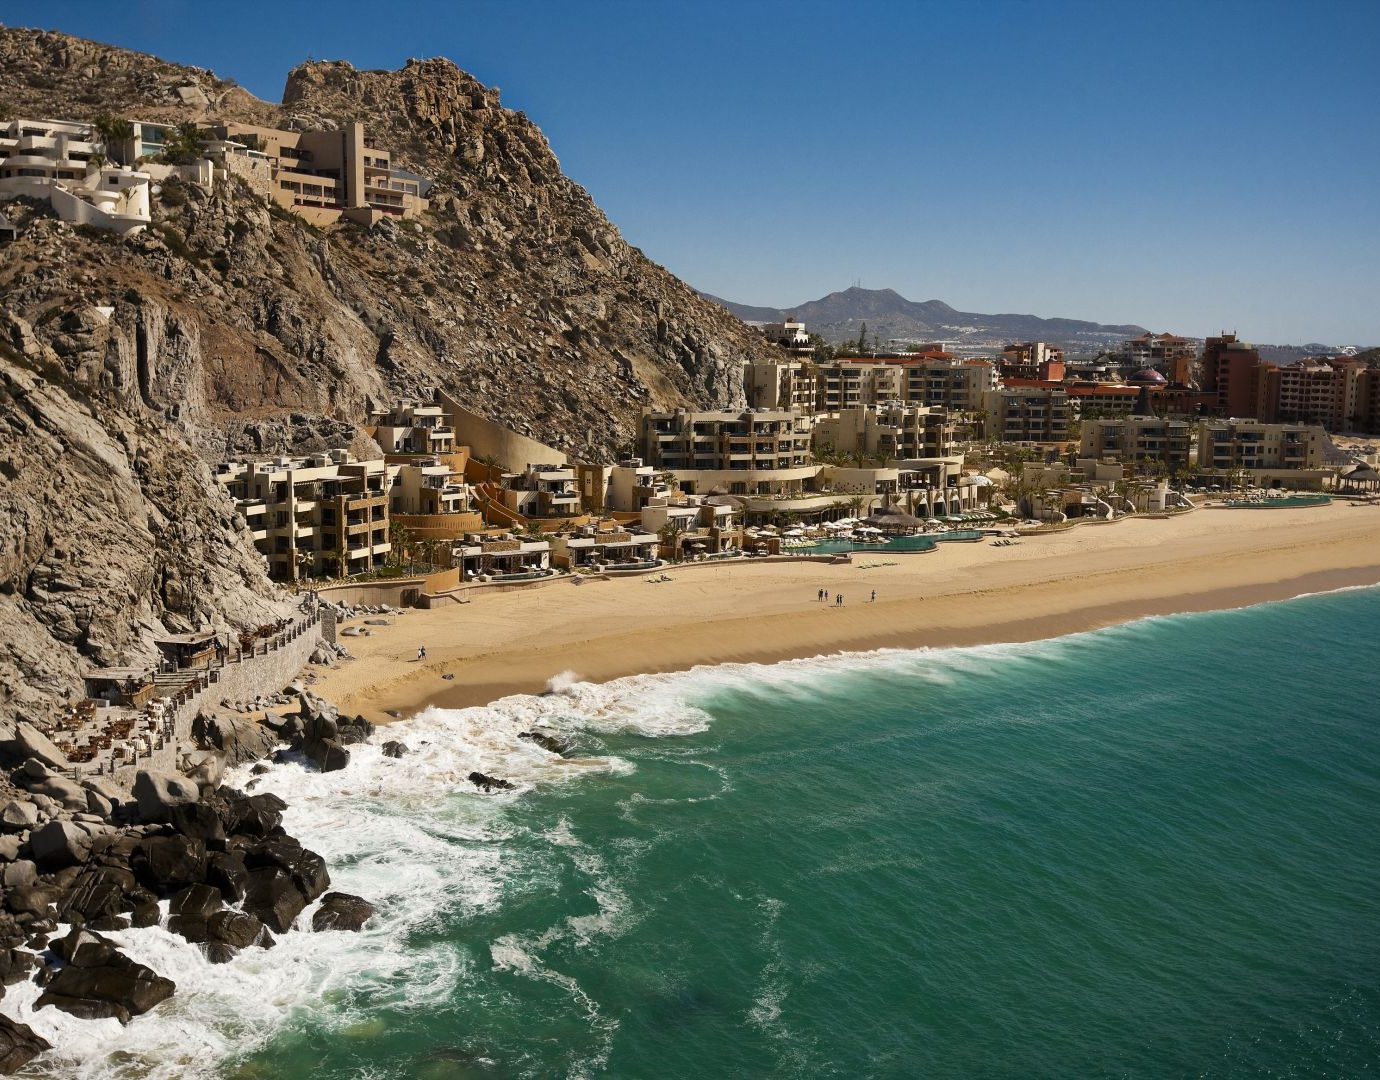 Aerial view of Resort at Pedregal